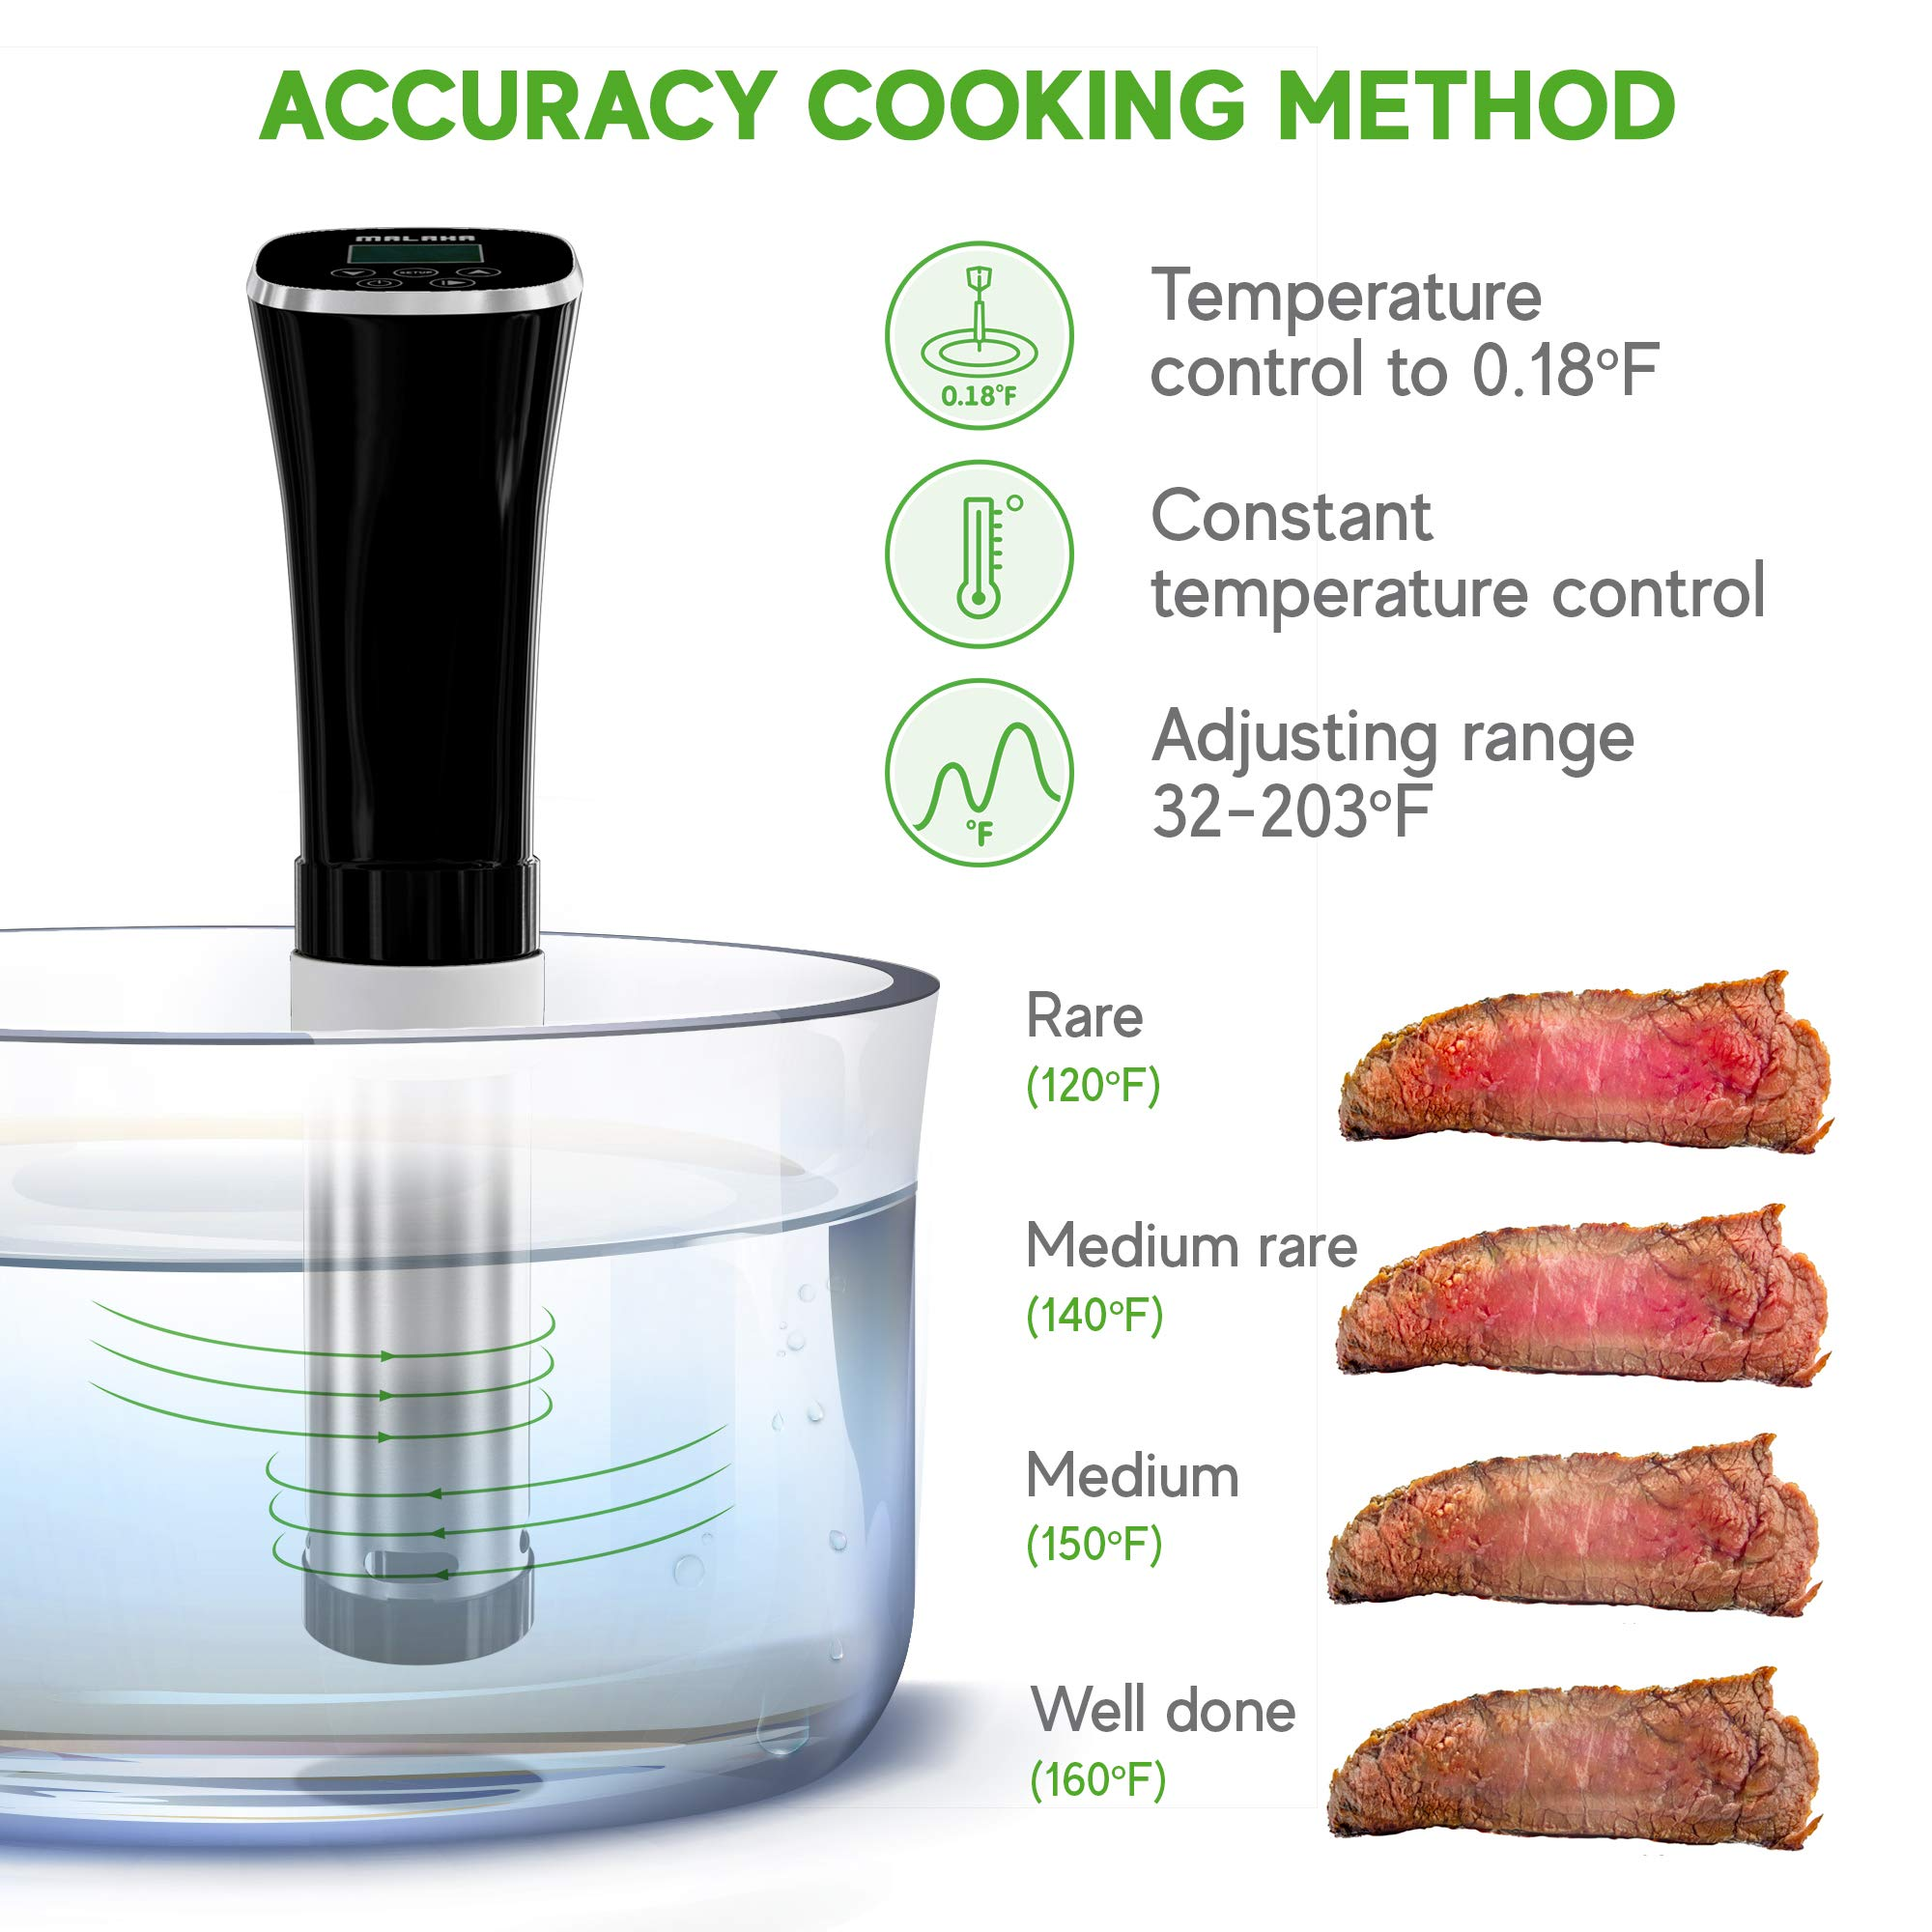 MALAHA Sous Vide Machine 1000W - Immersion Circulator - Professional Precision Cooker - Sous Vide Vacuum Heater - Accurate Temperature Digital Timer - Ultra Quiet Working Cooker by Malaha (Image #3)